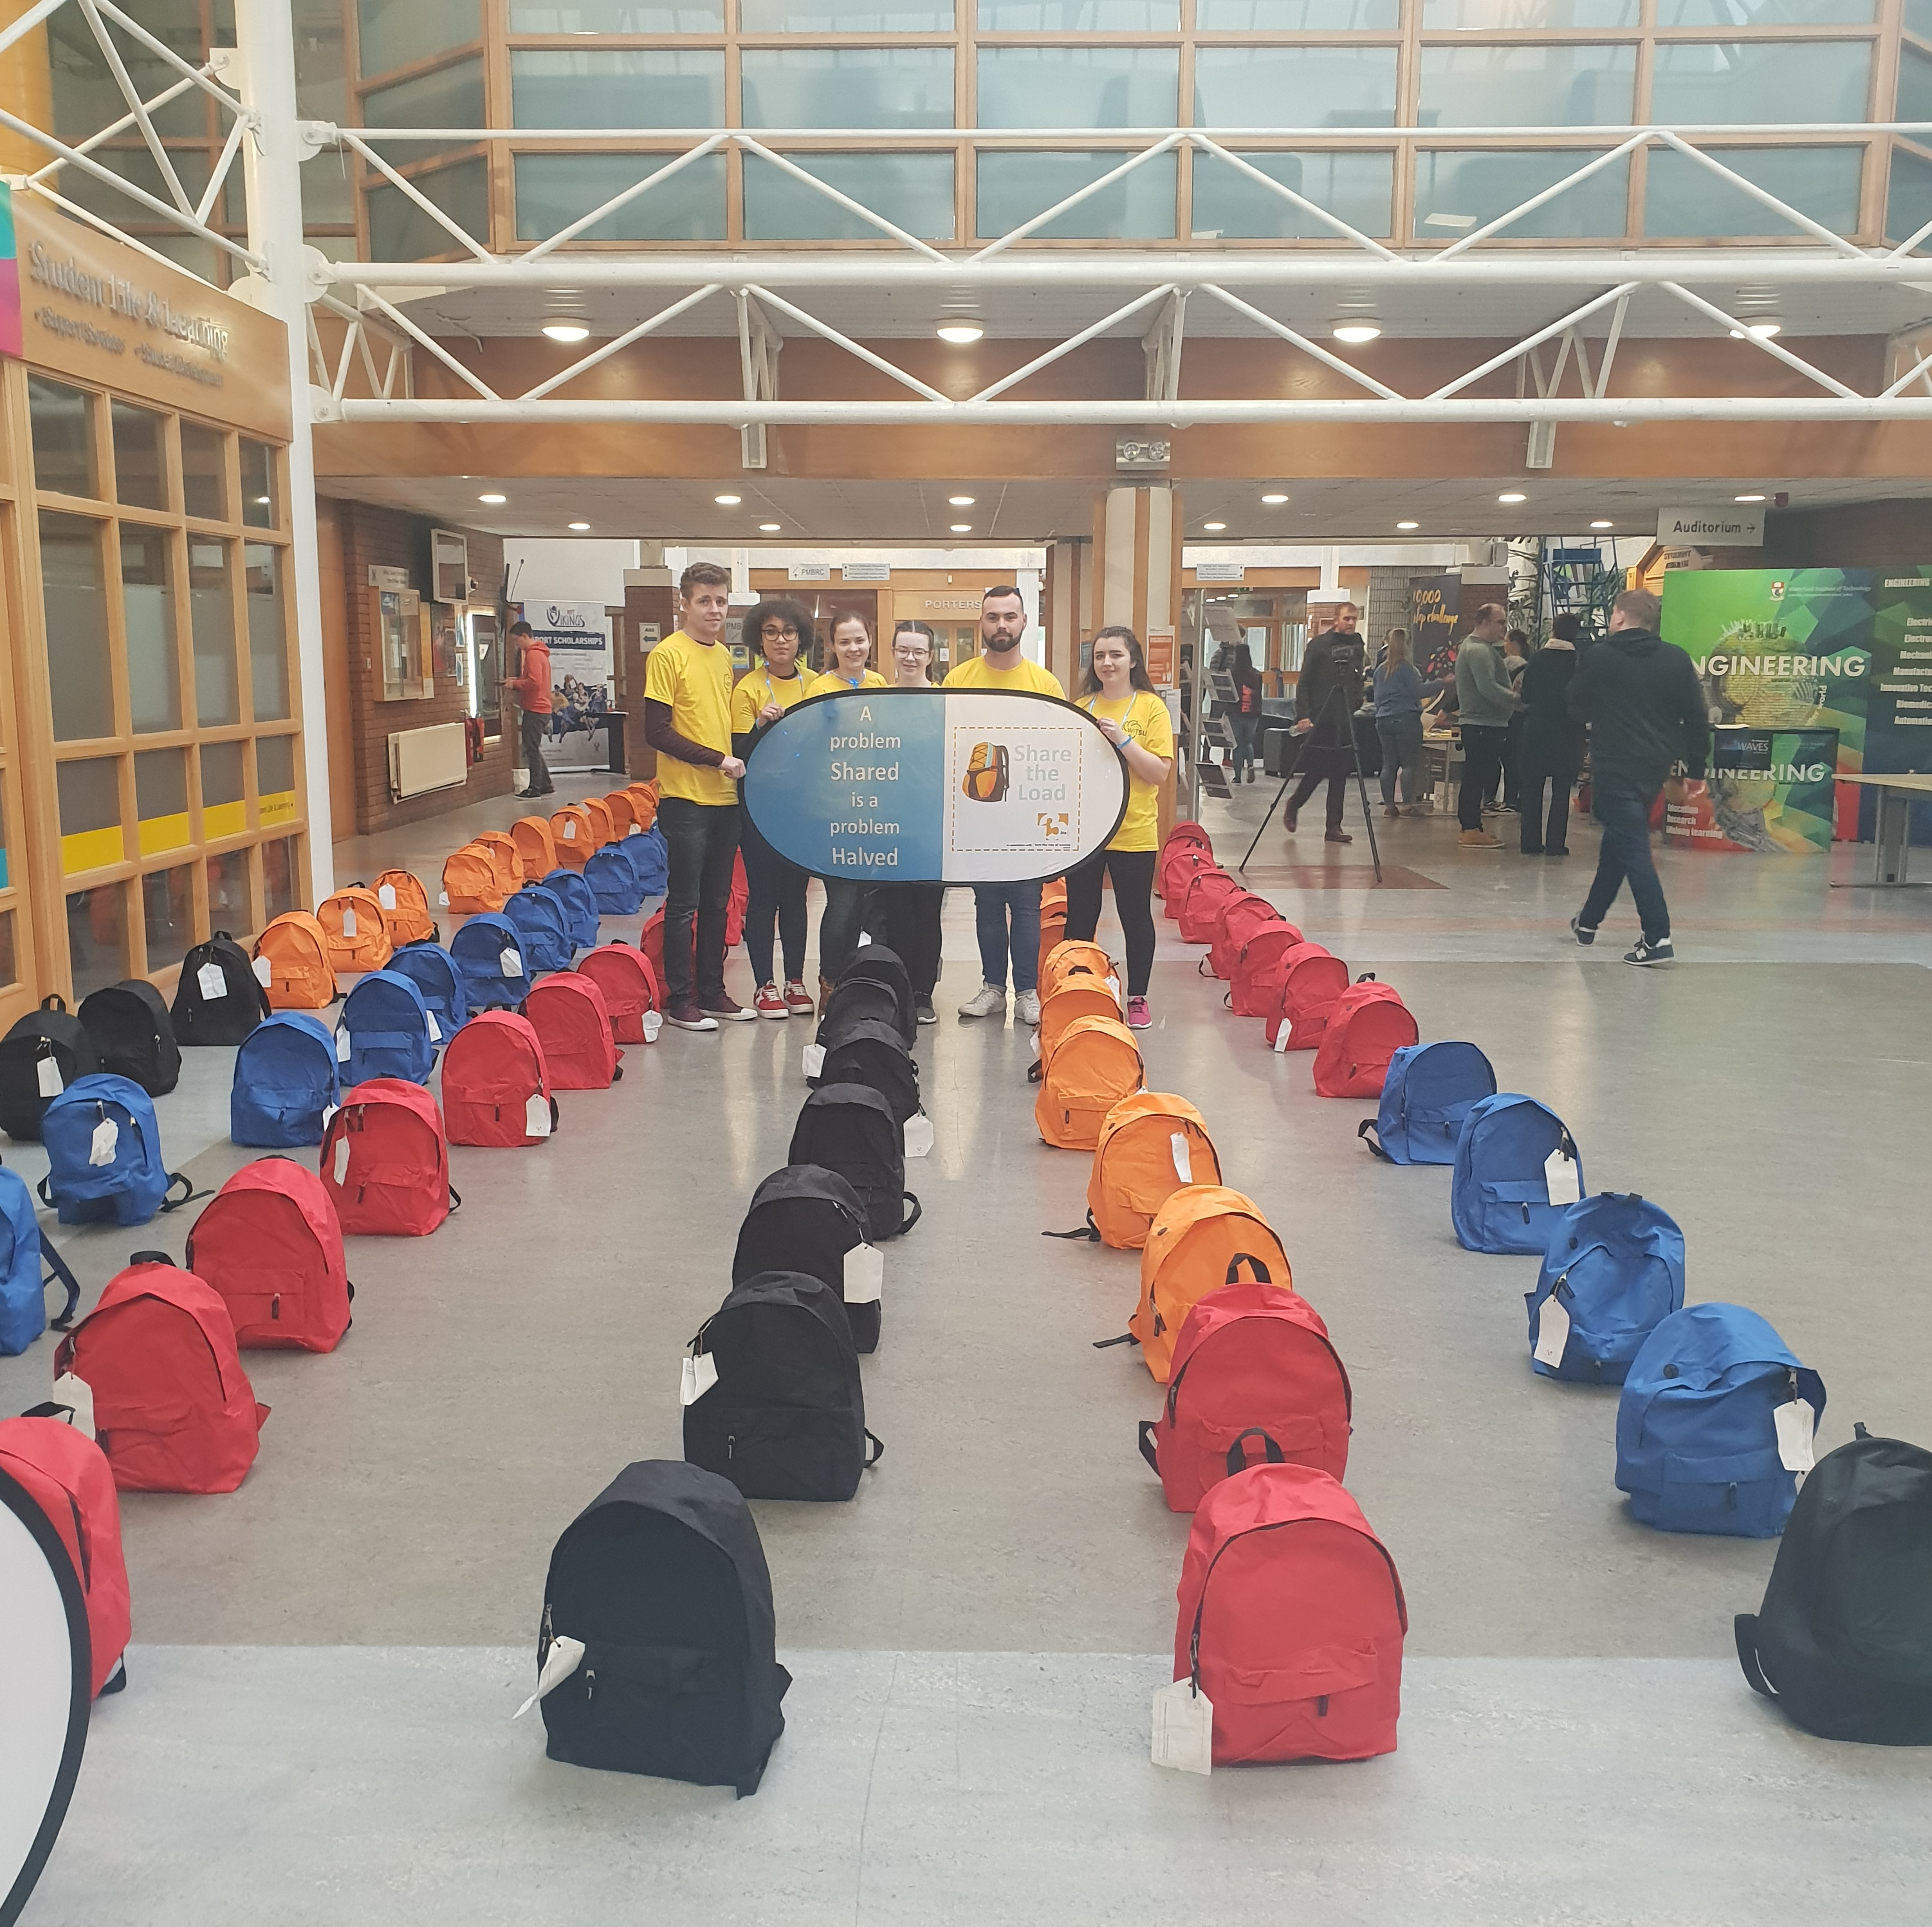 The public display of 124 backpacks, represents the average number of college students who die by suicide in Ireland each year